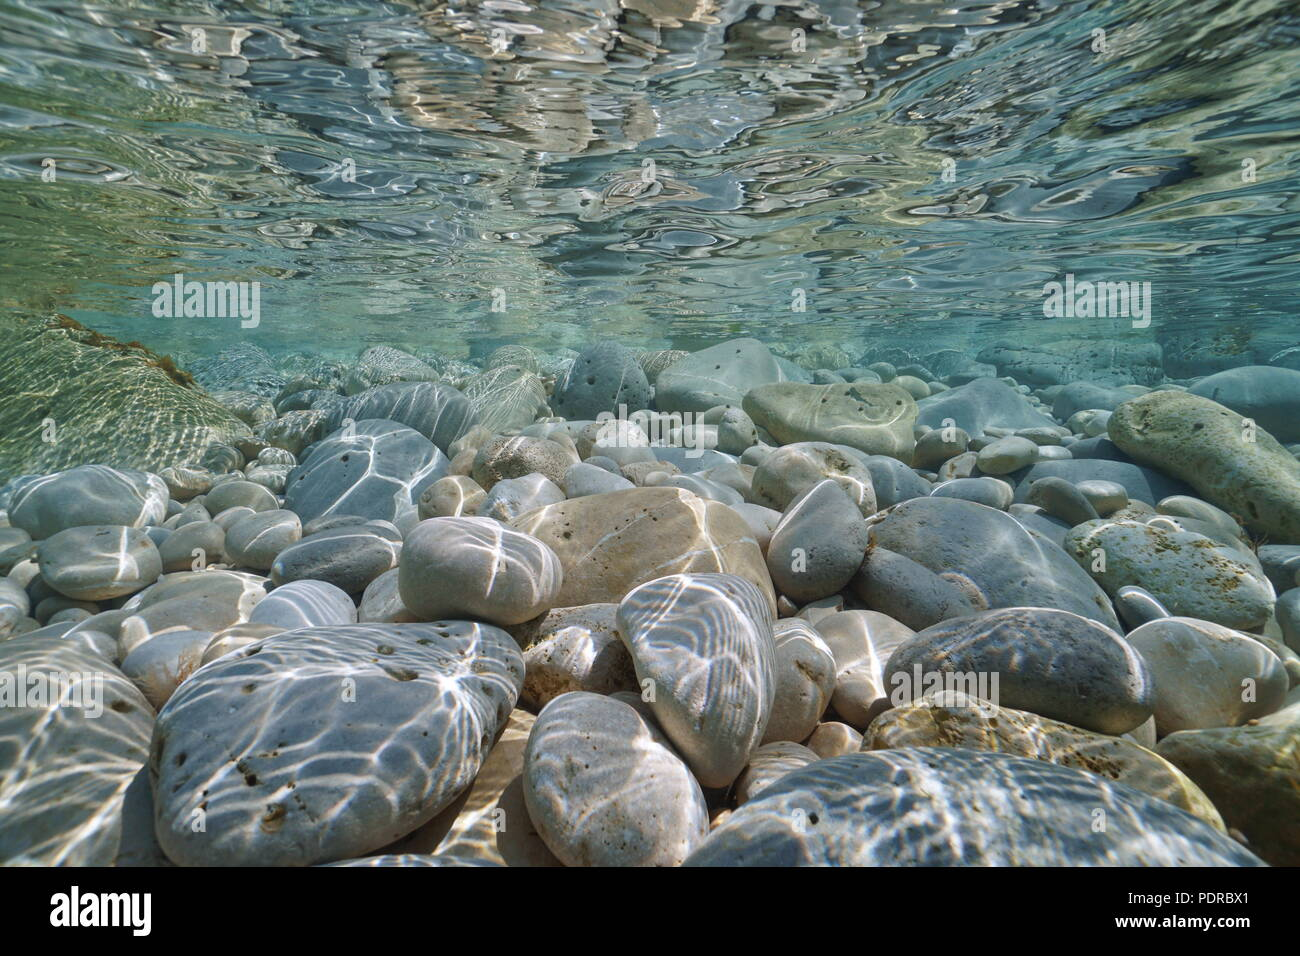 Pebbles and rocks below water surface in shallow water in the Mediterranean sea, underwater scene, Javea , Alicante, Valencia, Spain - Stock Image